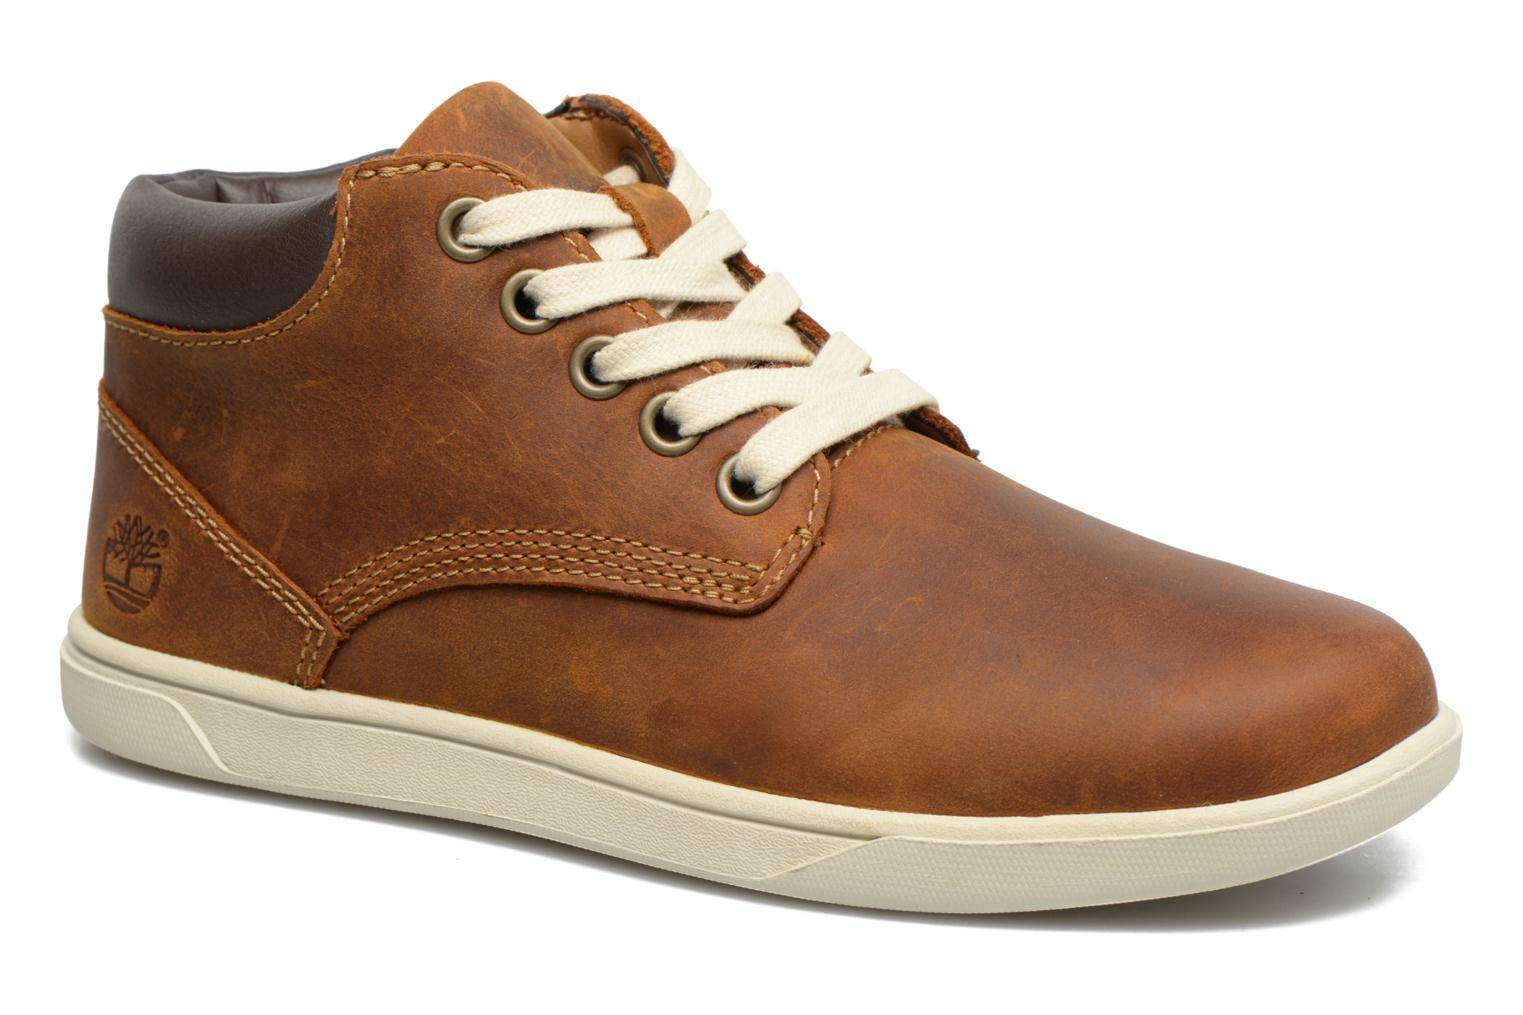 Timberland Groveton Leather Chukka - Chaussures à lacets Homme, Marron